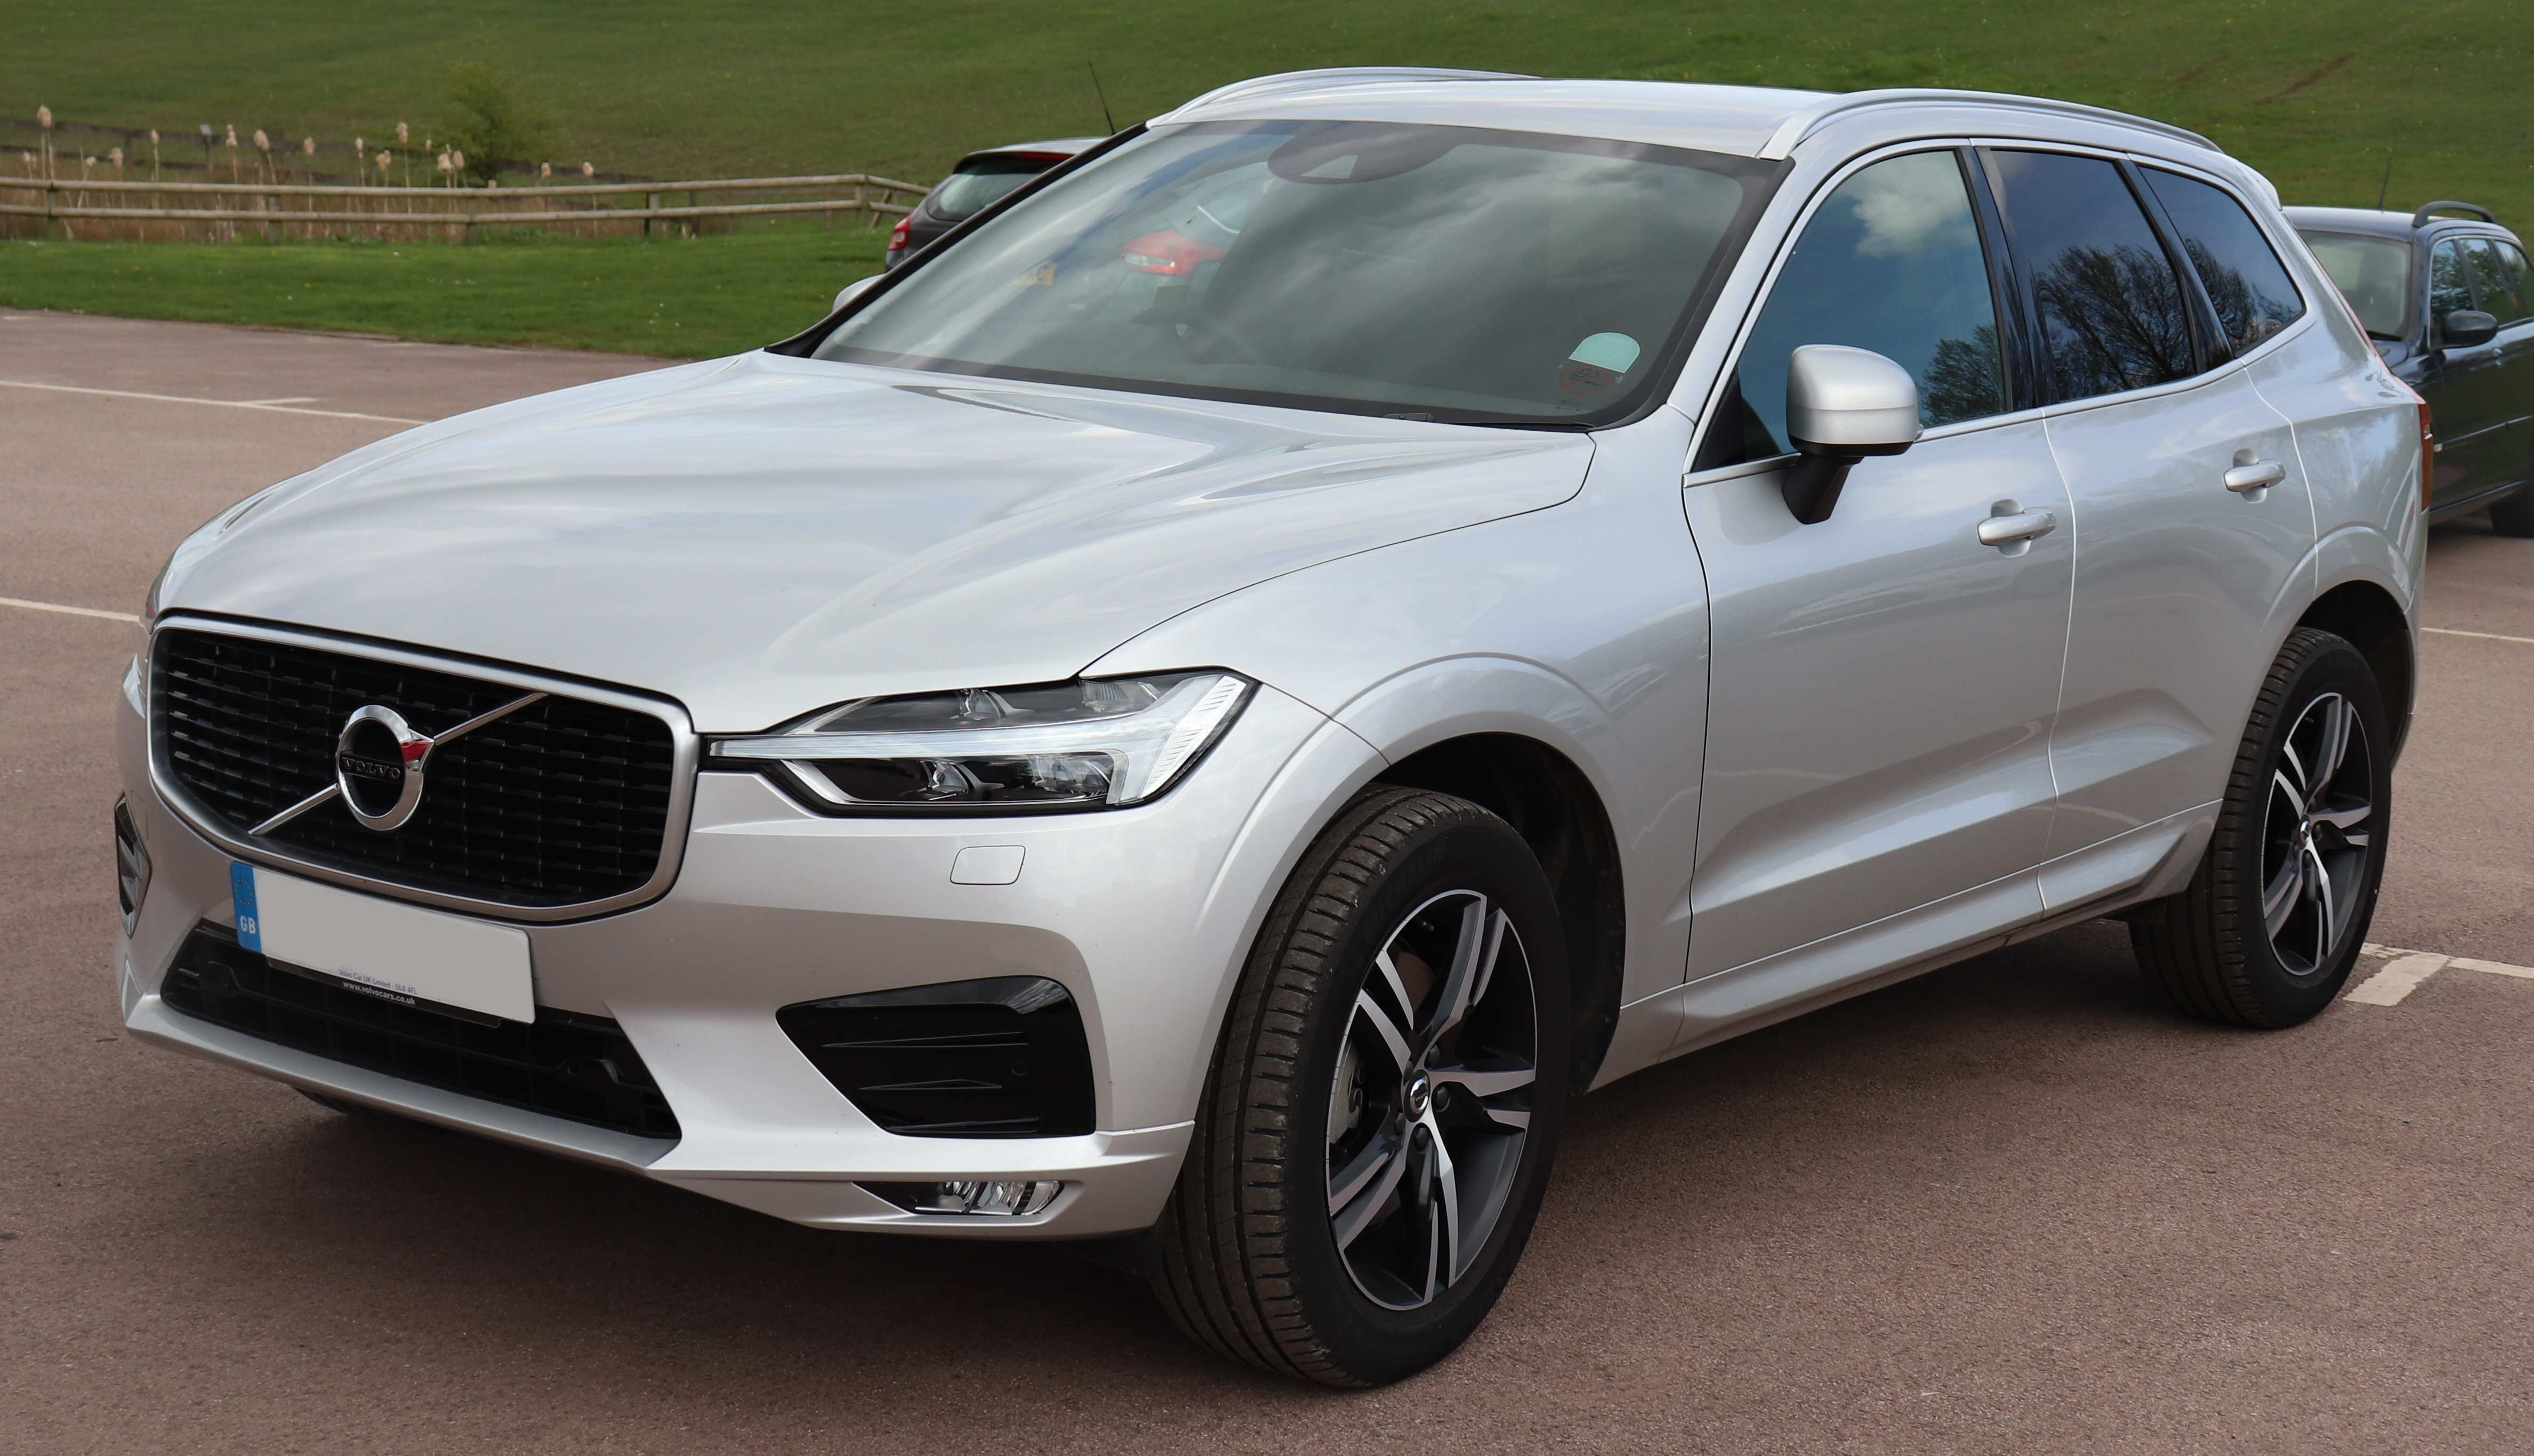 90 Best Review New Volvo Xc60 2019 Manual Specs Wallpaper for New Volvo Xc60 2019 Manual Specs